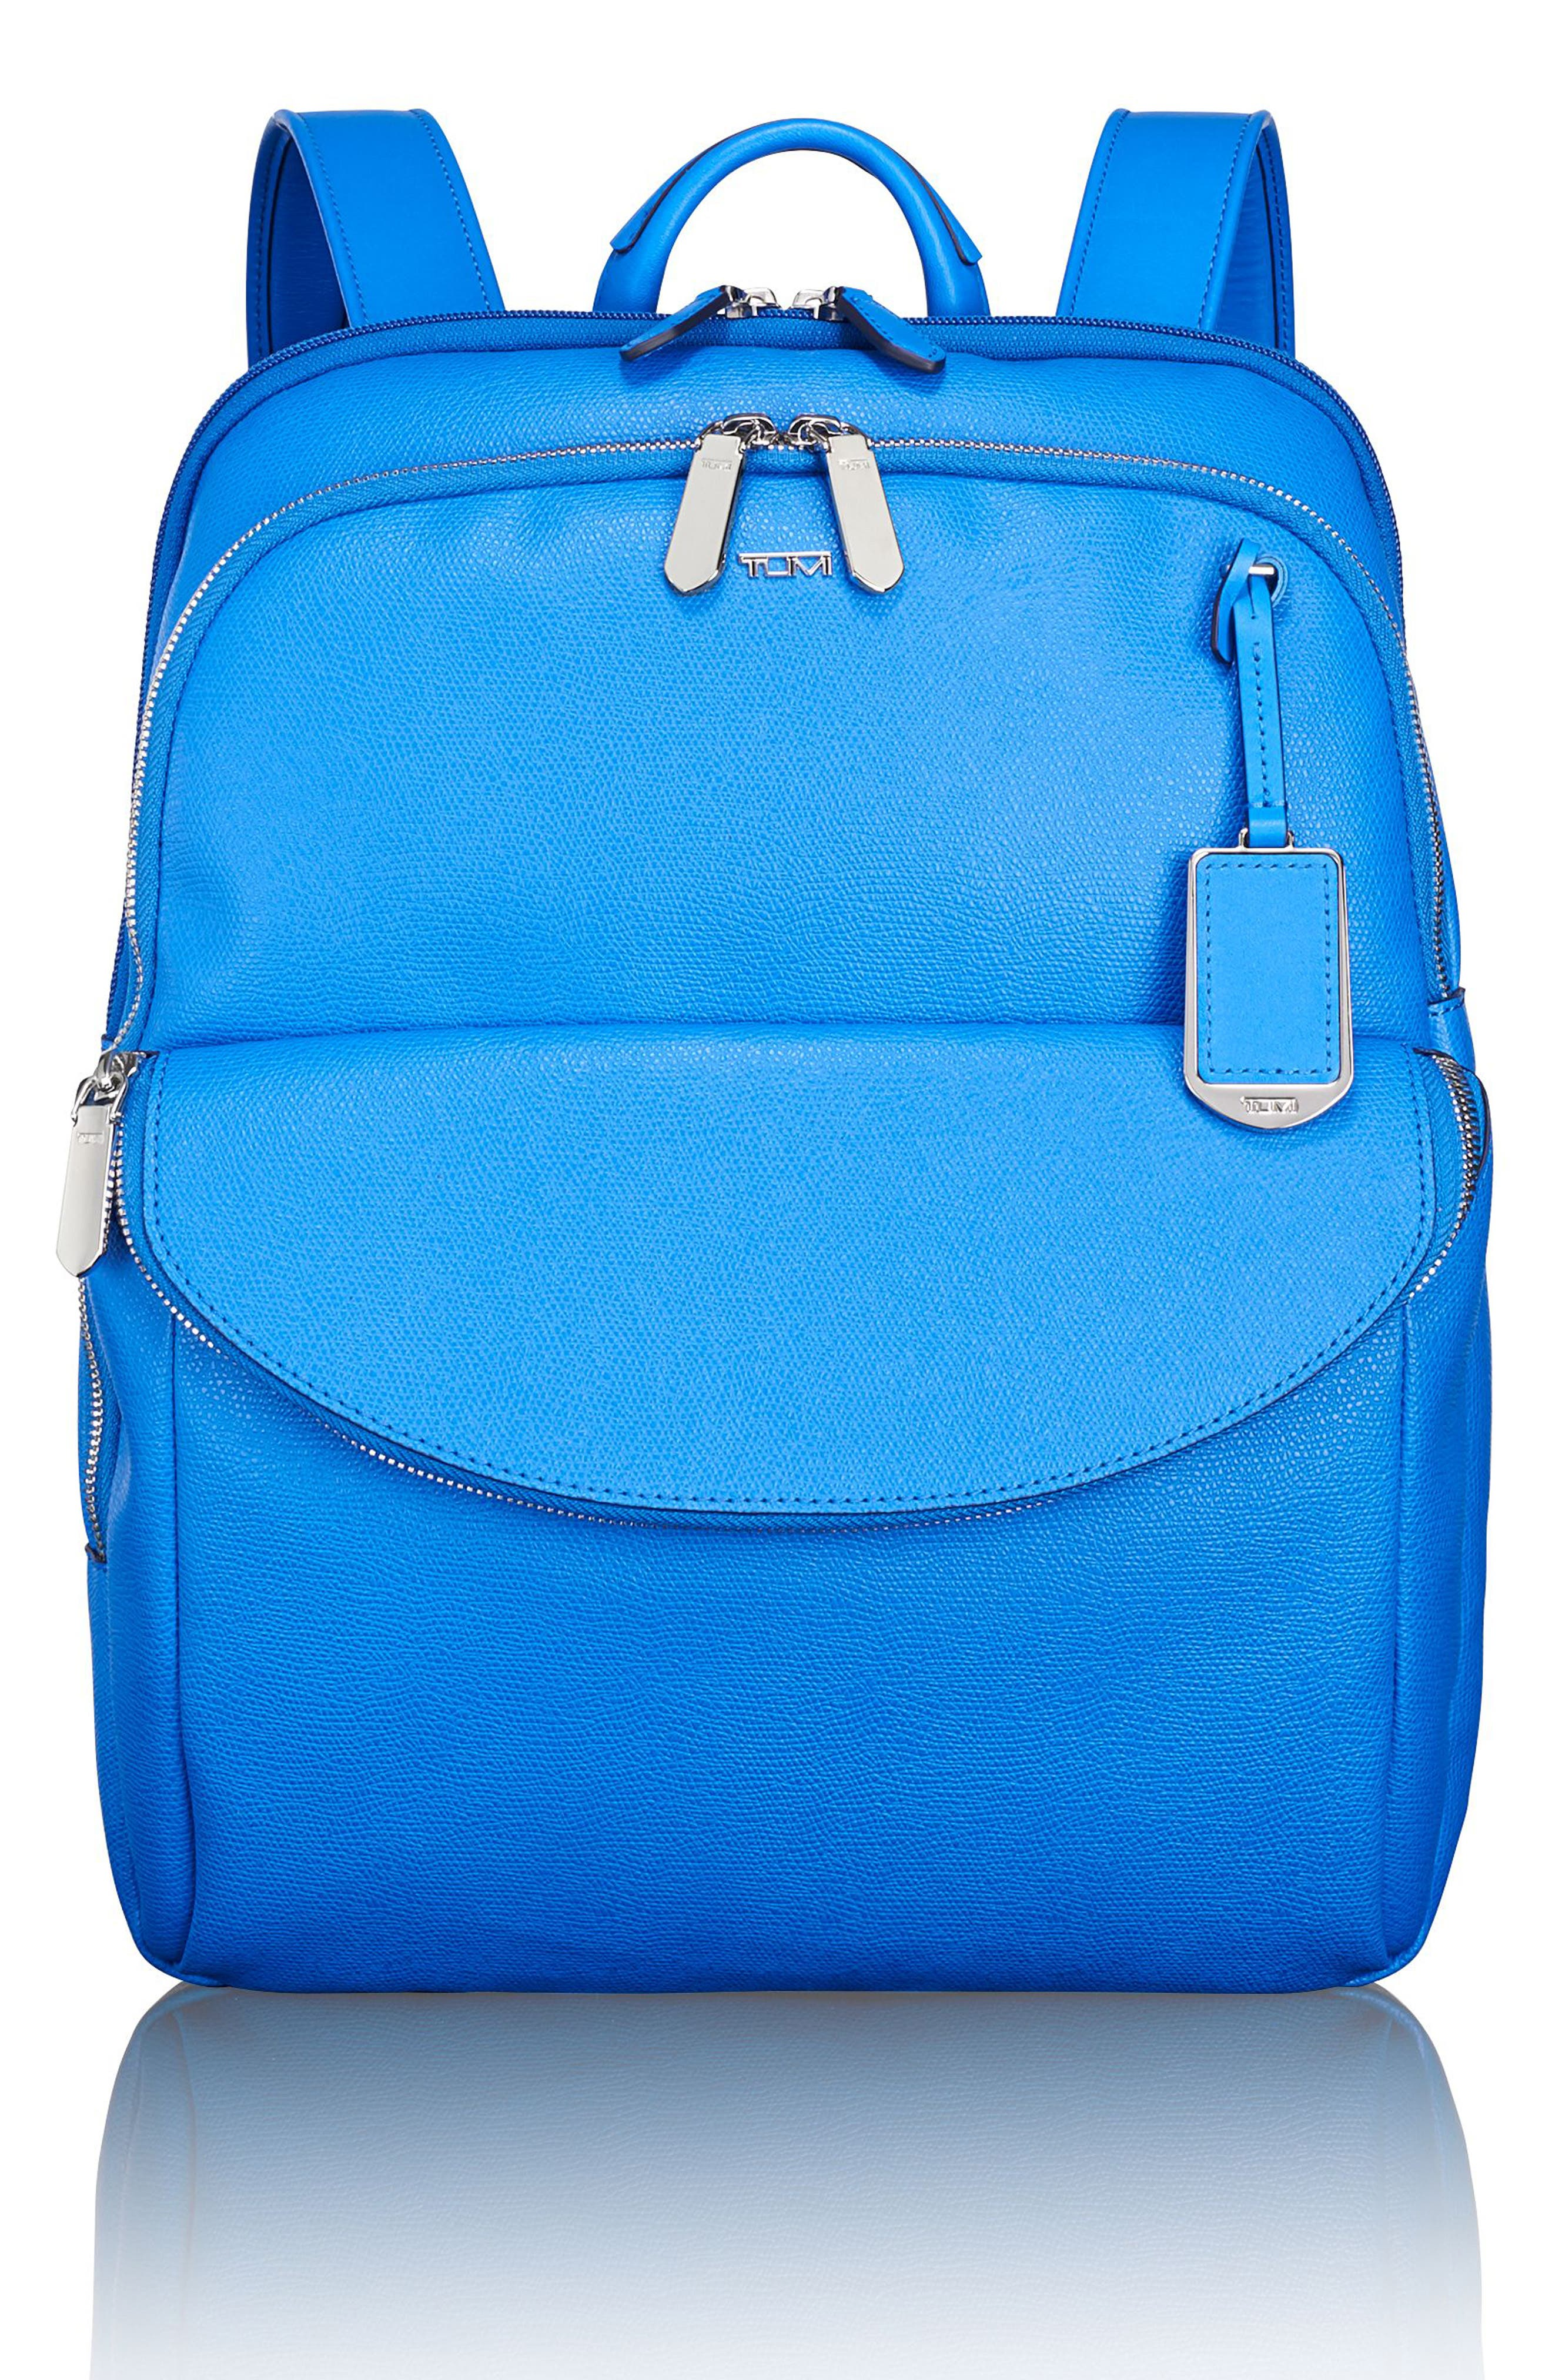 Sinclair - Hanne Coated Canvas Laptop Backpack,                             Main thumbnail 3, color,